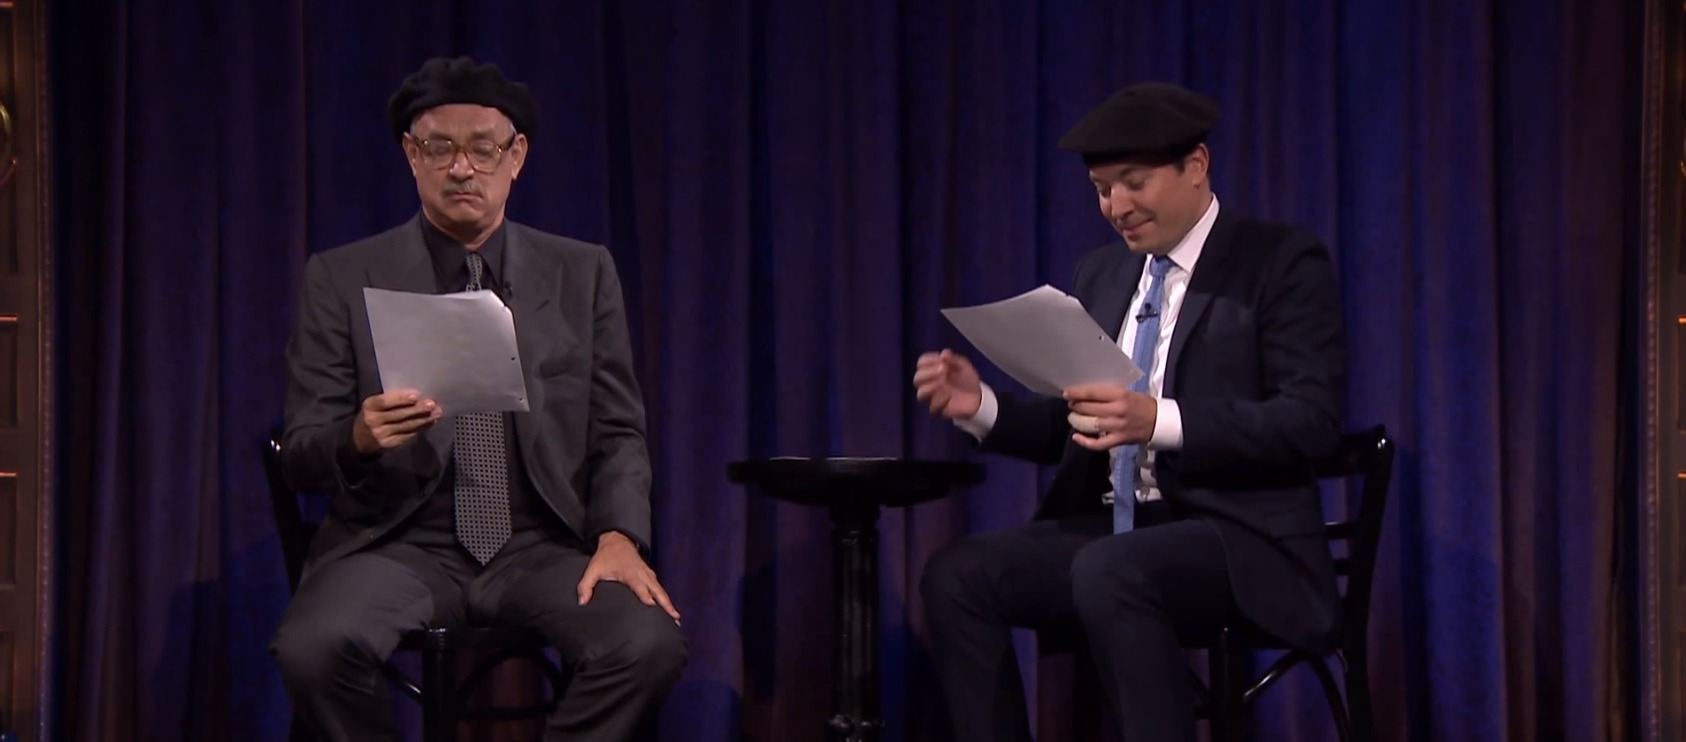 Tom Hanks, spectacular human, just nailed it performing these scripts written by actual kids